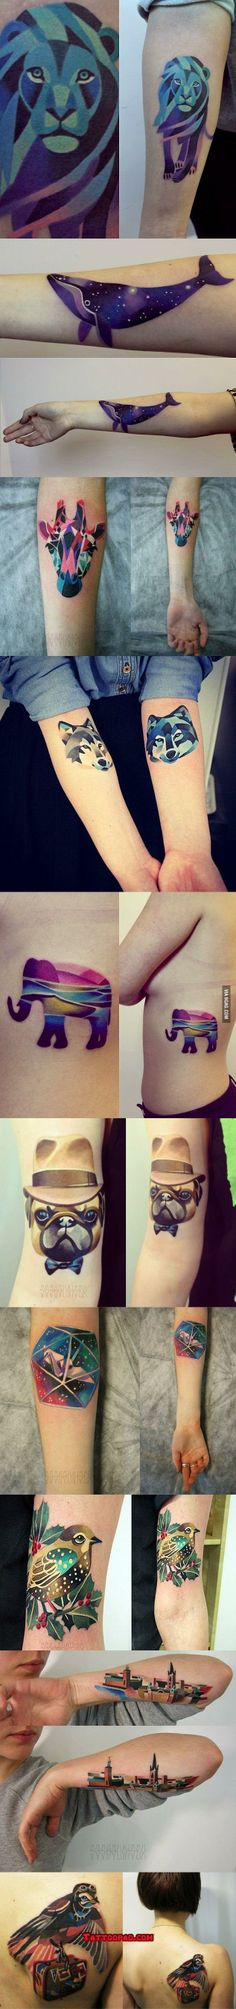 animal tattoos, colorful animals and tattoos. #tattoo #tattoos #ink